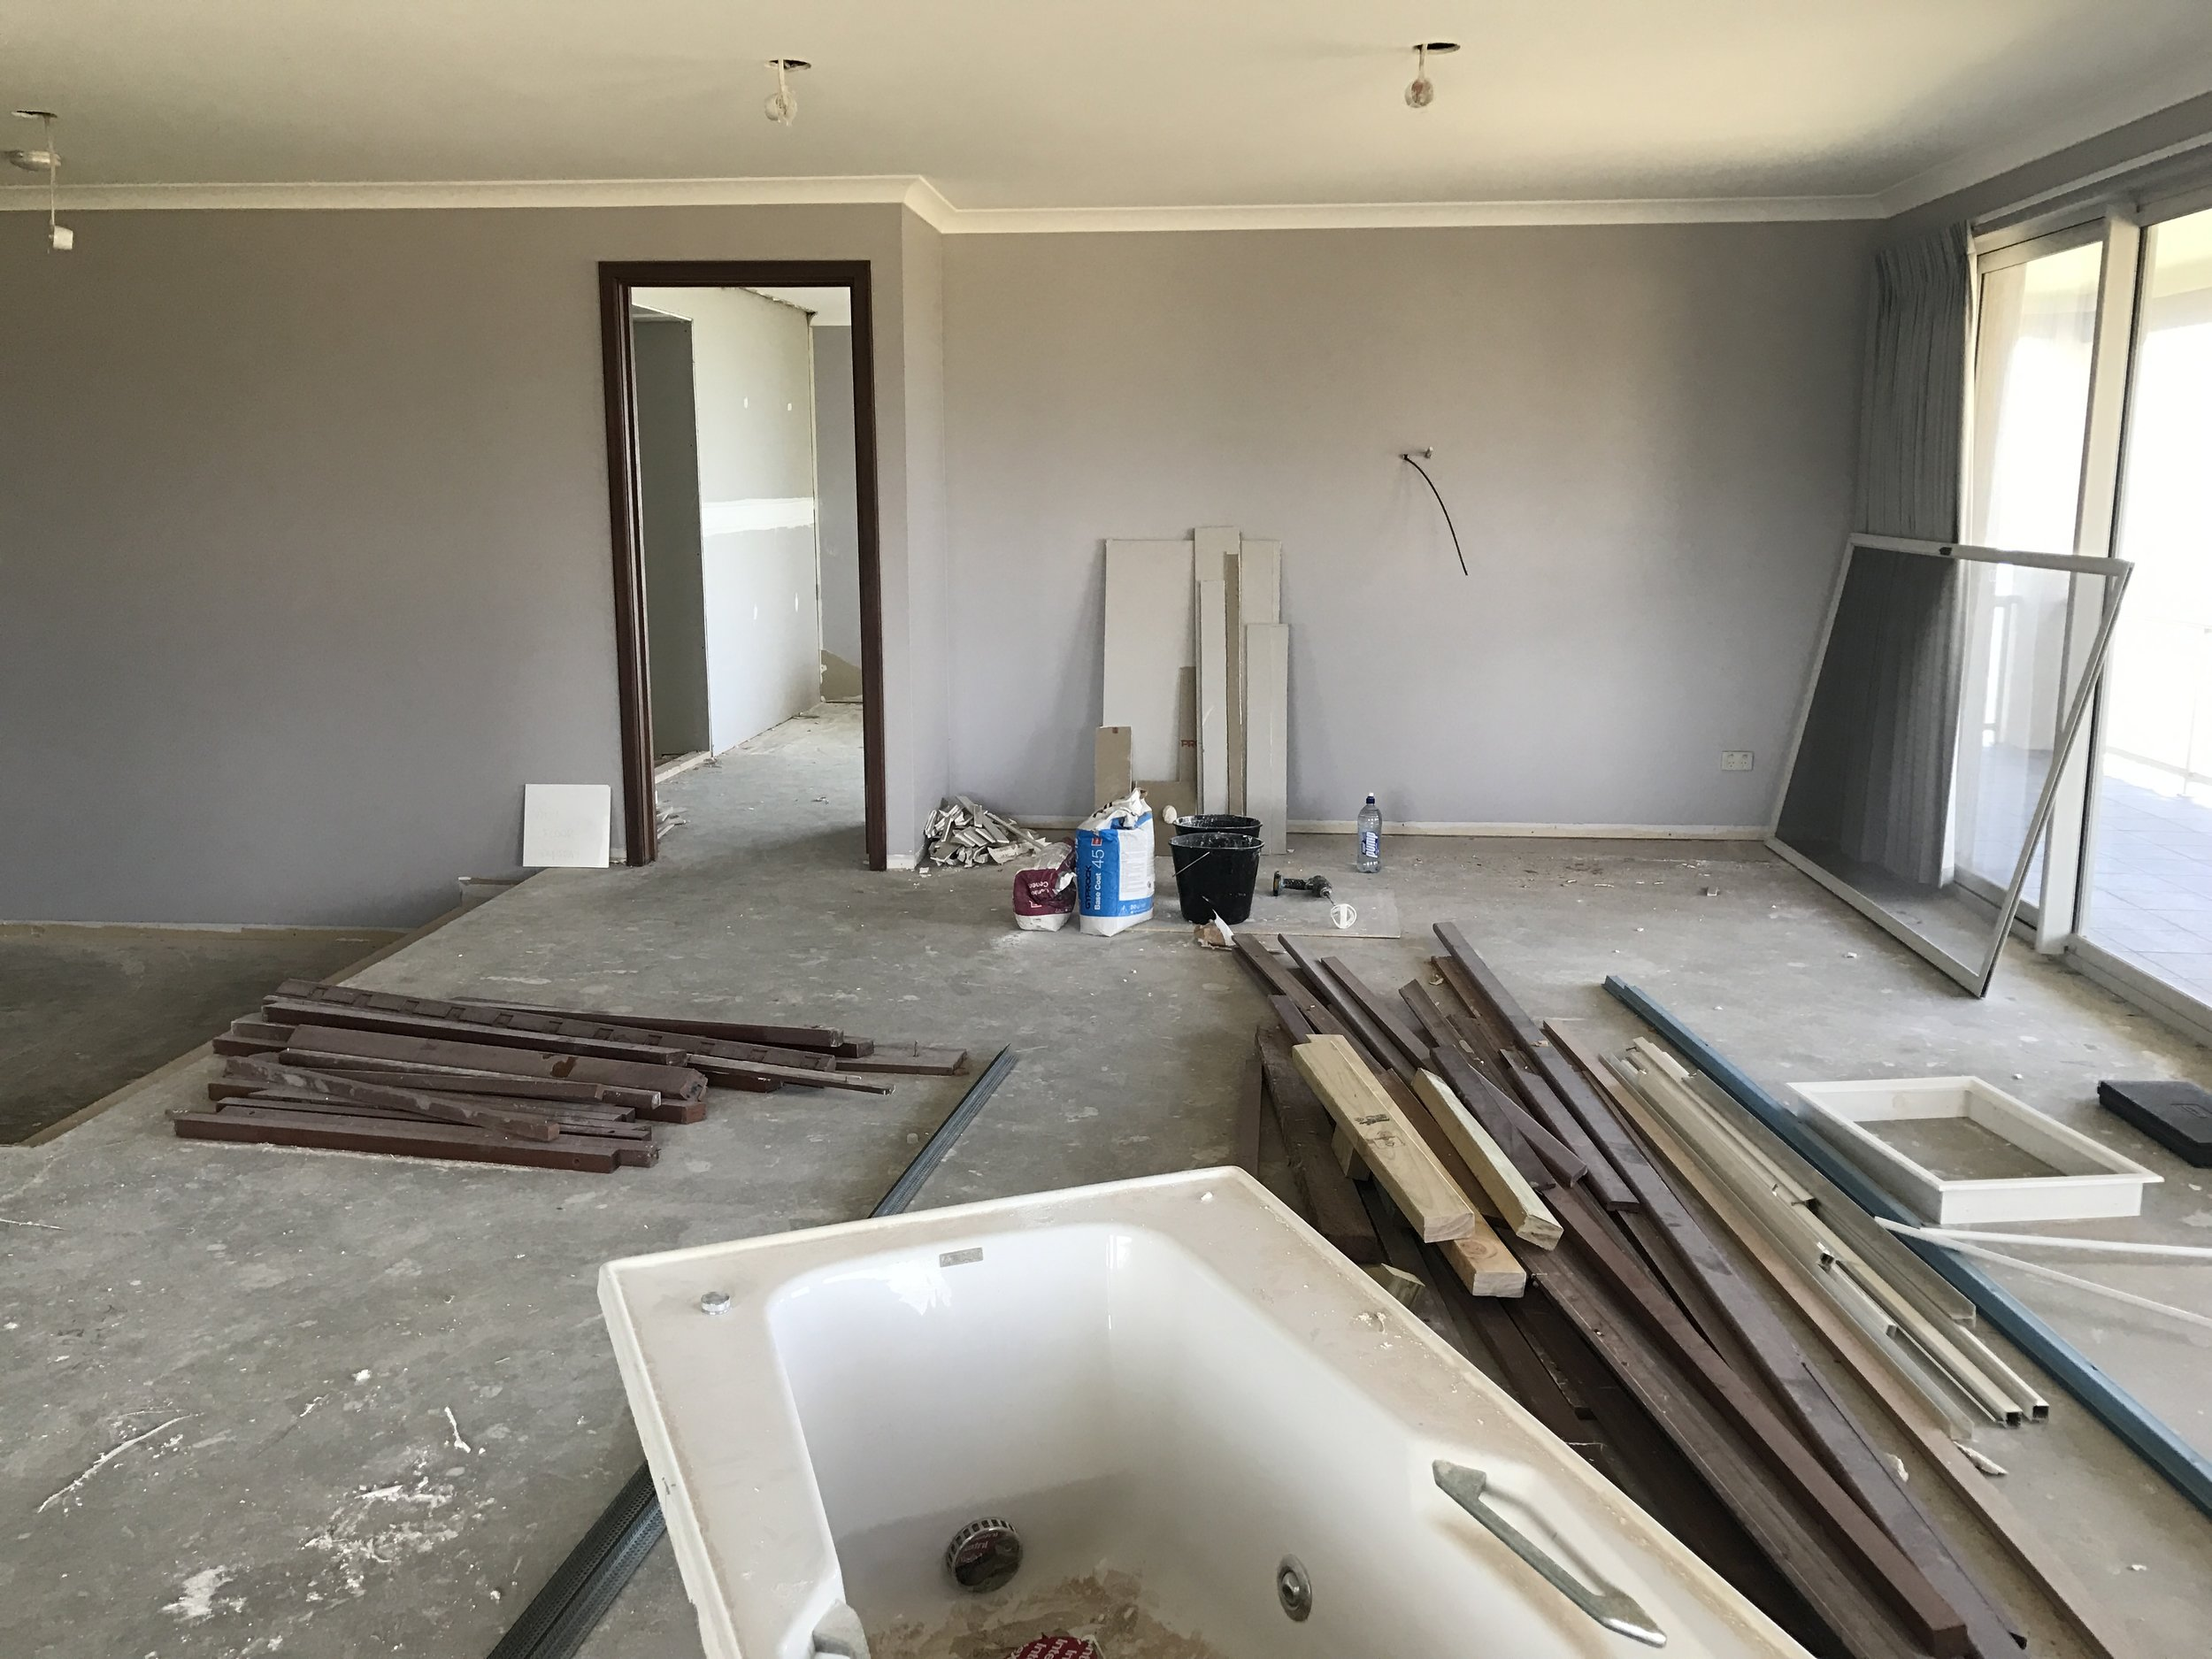 BEFORE: This space was a tired, outdated room and then a cluttered building space when we started this Minted Interiors project. Both of which created a flat uneasy vibe.